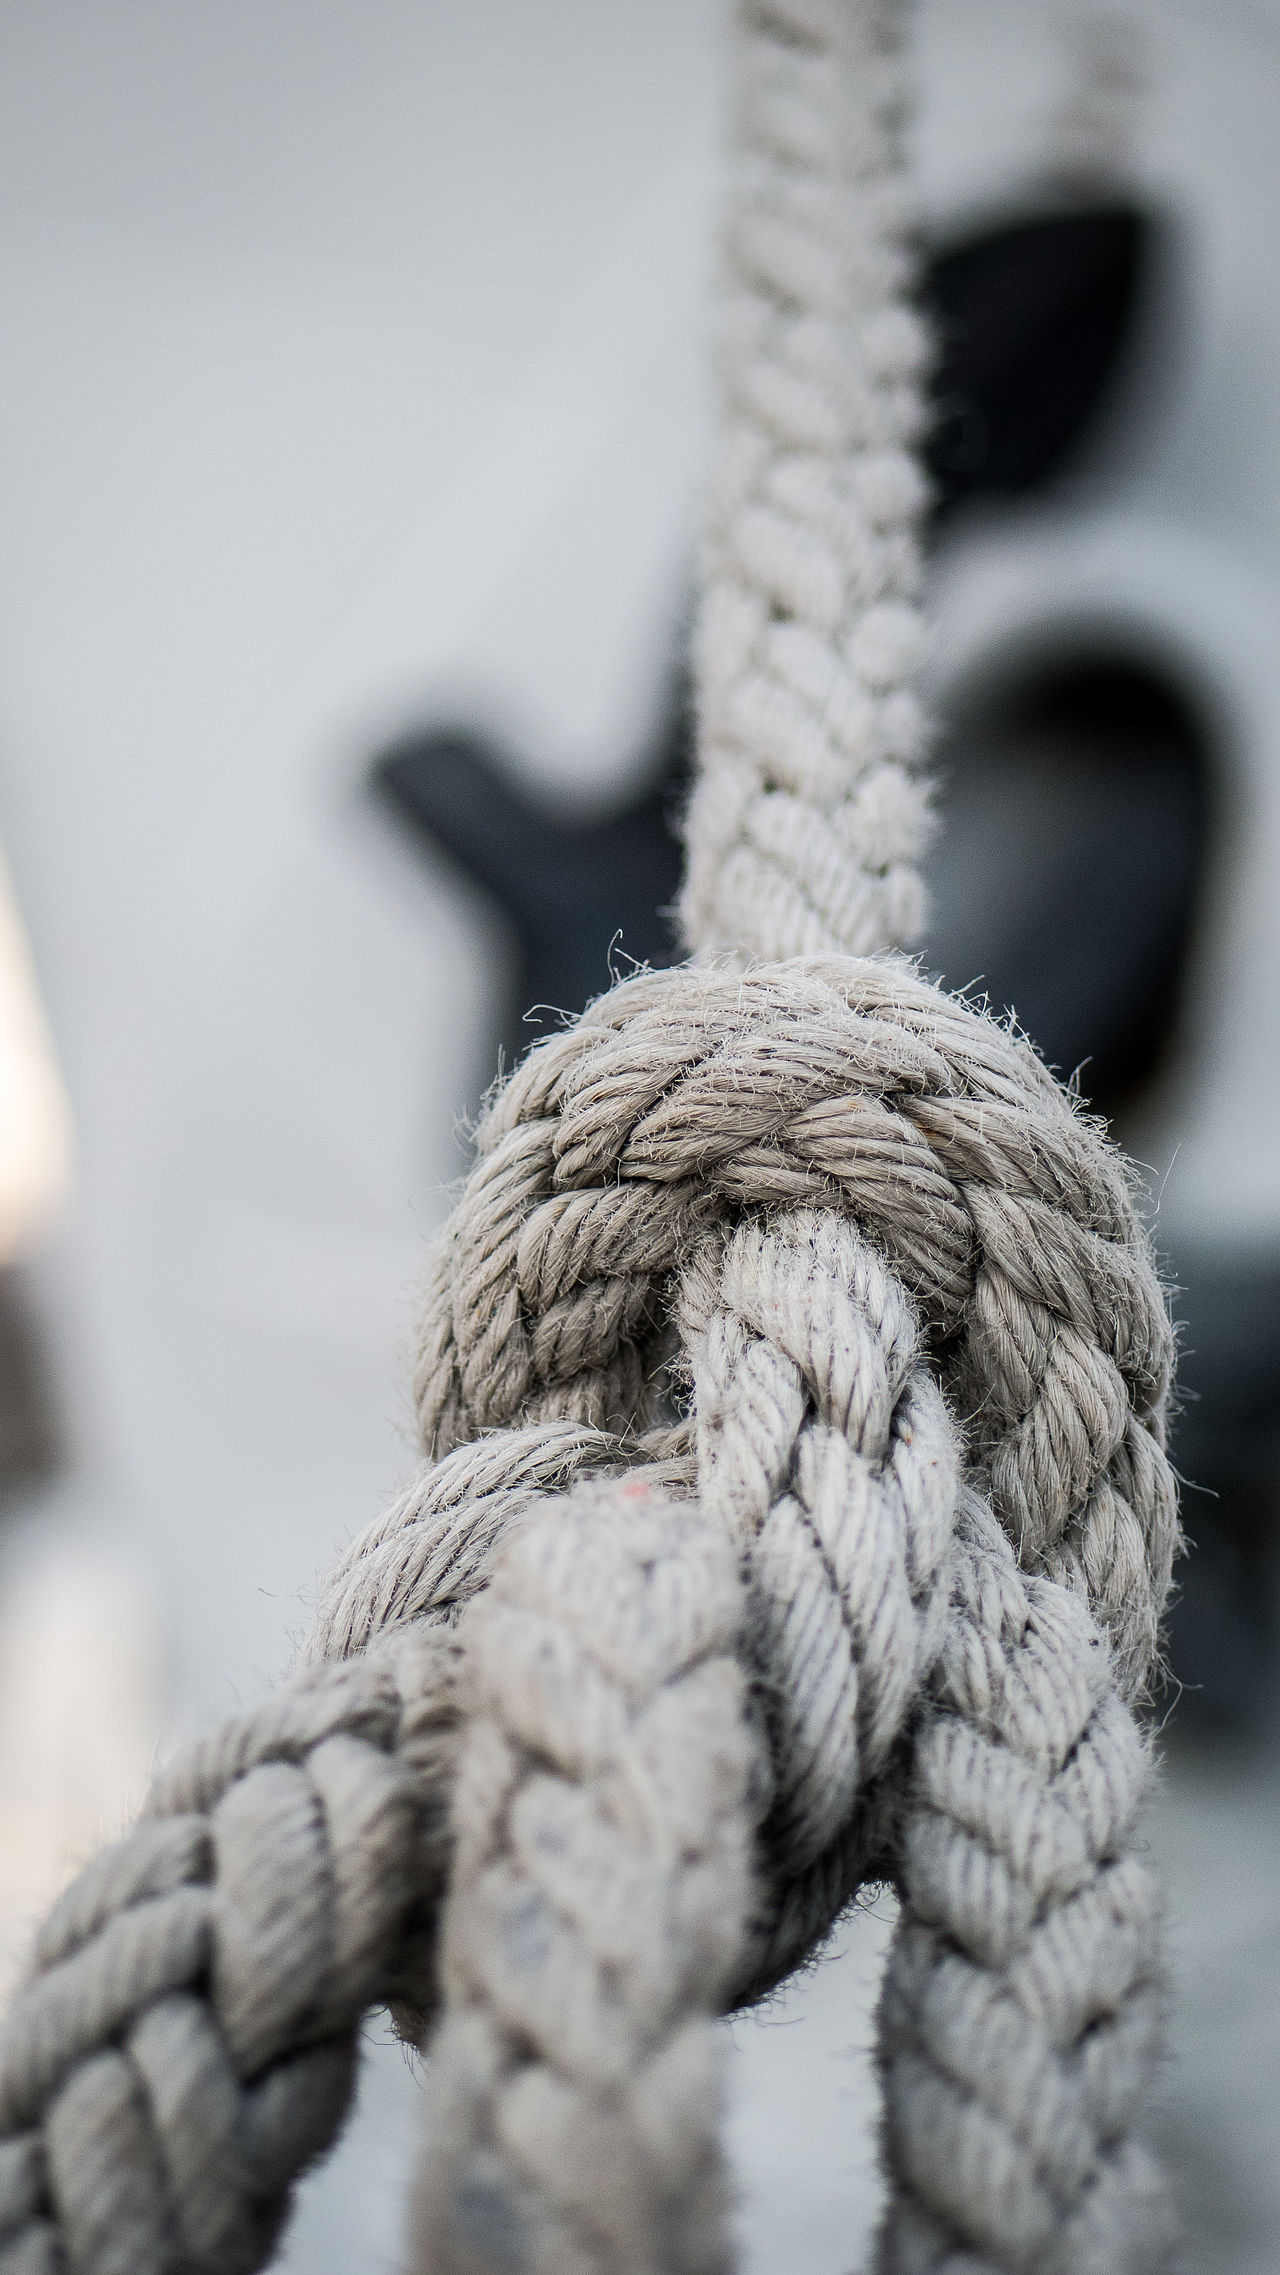 The ropes of an old ship in Finland :) Close-up Day Detail Details Textures And Shapes Rope Ropes Finnish  Ships⚓️⛵️🚢 Ship Ships Ships🚢 Finnland Ropes And Lines Depth Of Field DEP Textured  Finland♥ Finland Finlandlovers Finlandia